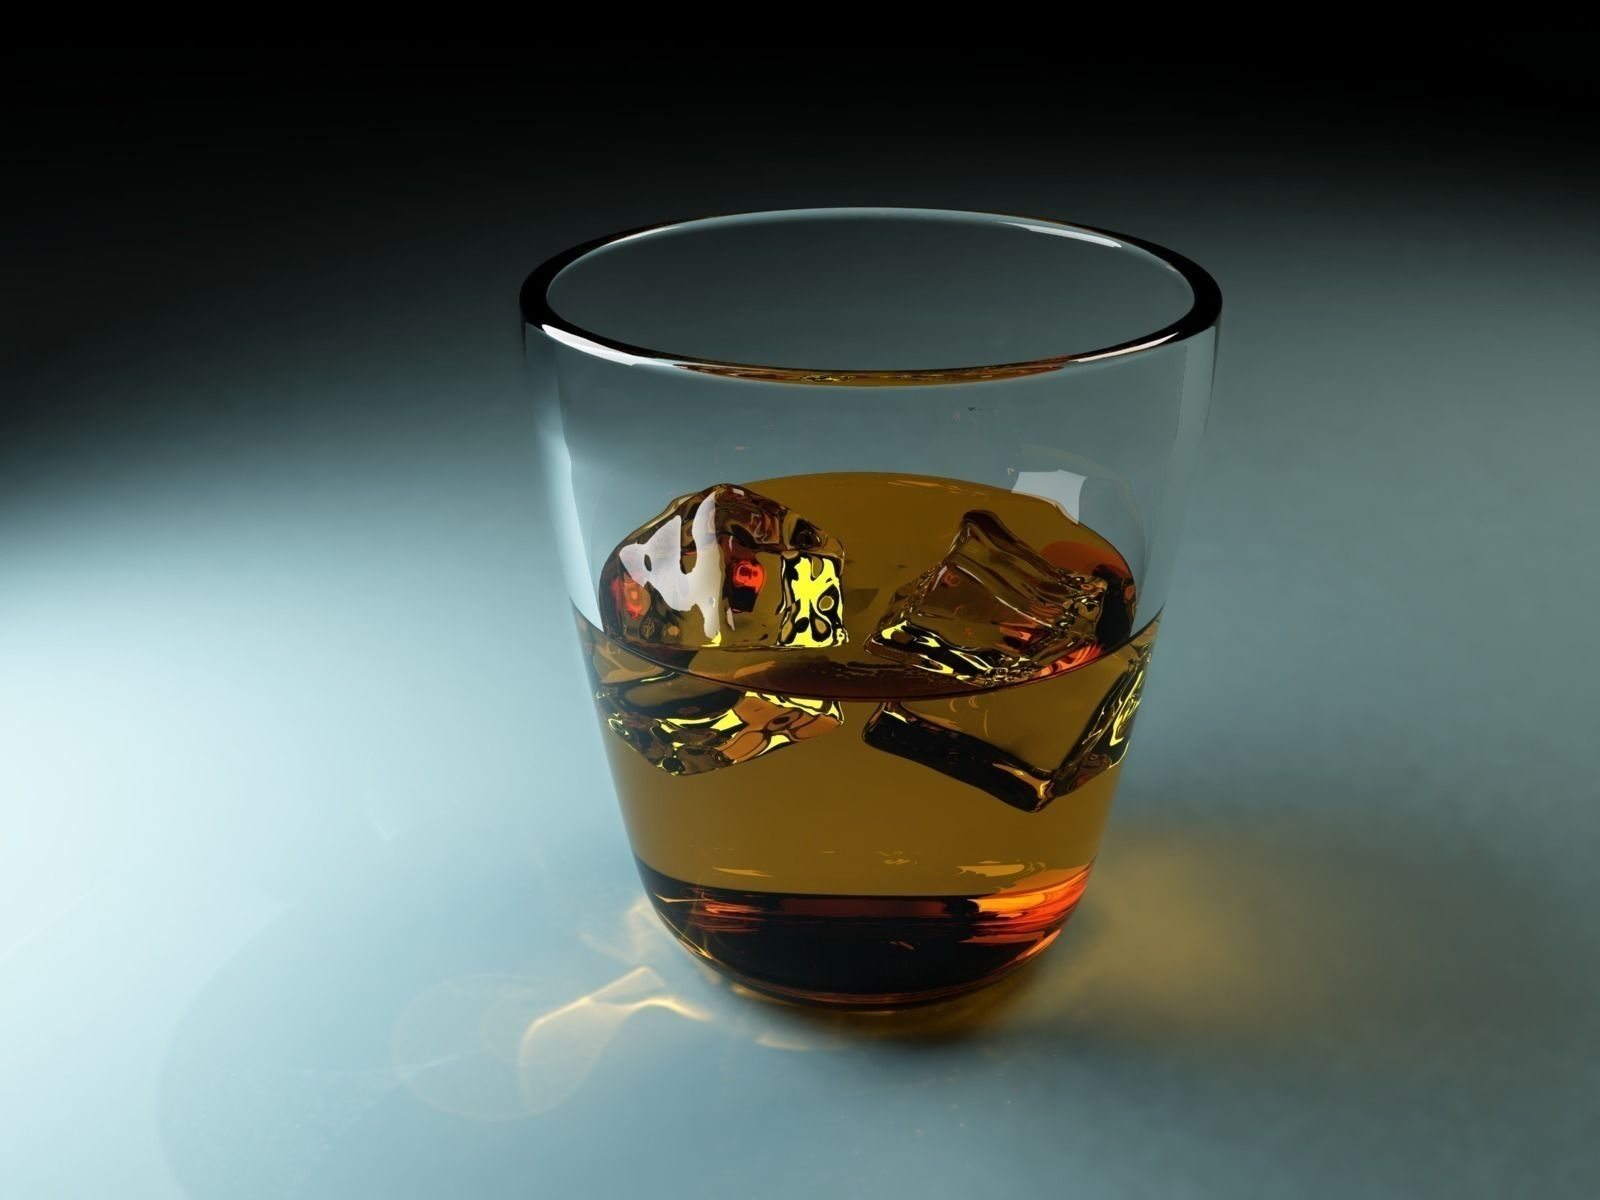 <p>Time Out New York has a handy-dandy chart to inform you on flavor profiles, aging, and regional info for six types of the brown stuff. (This includes a whiskey I have never had the chance to try: Japanese whiskey.)</p>